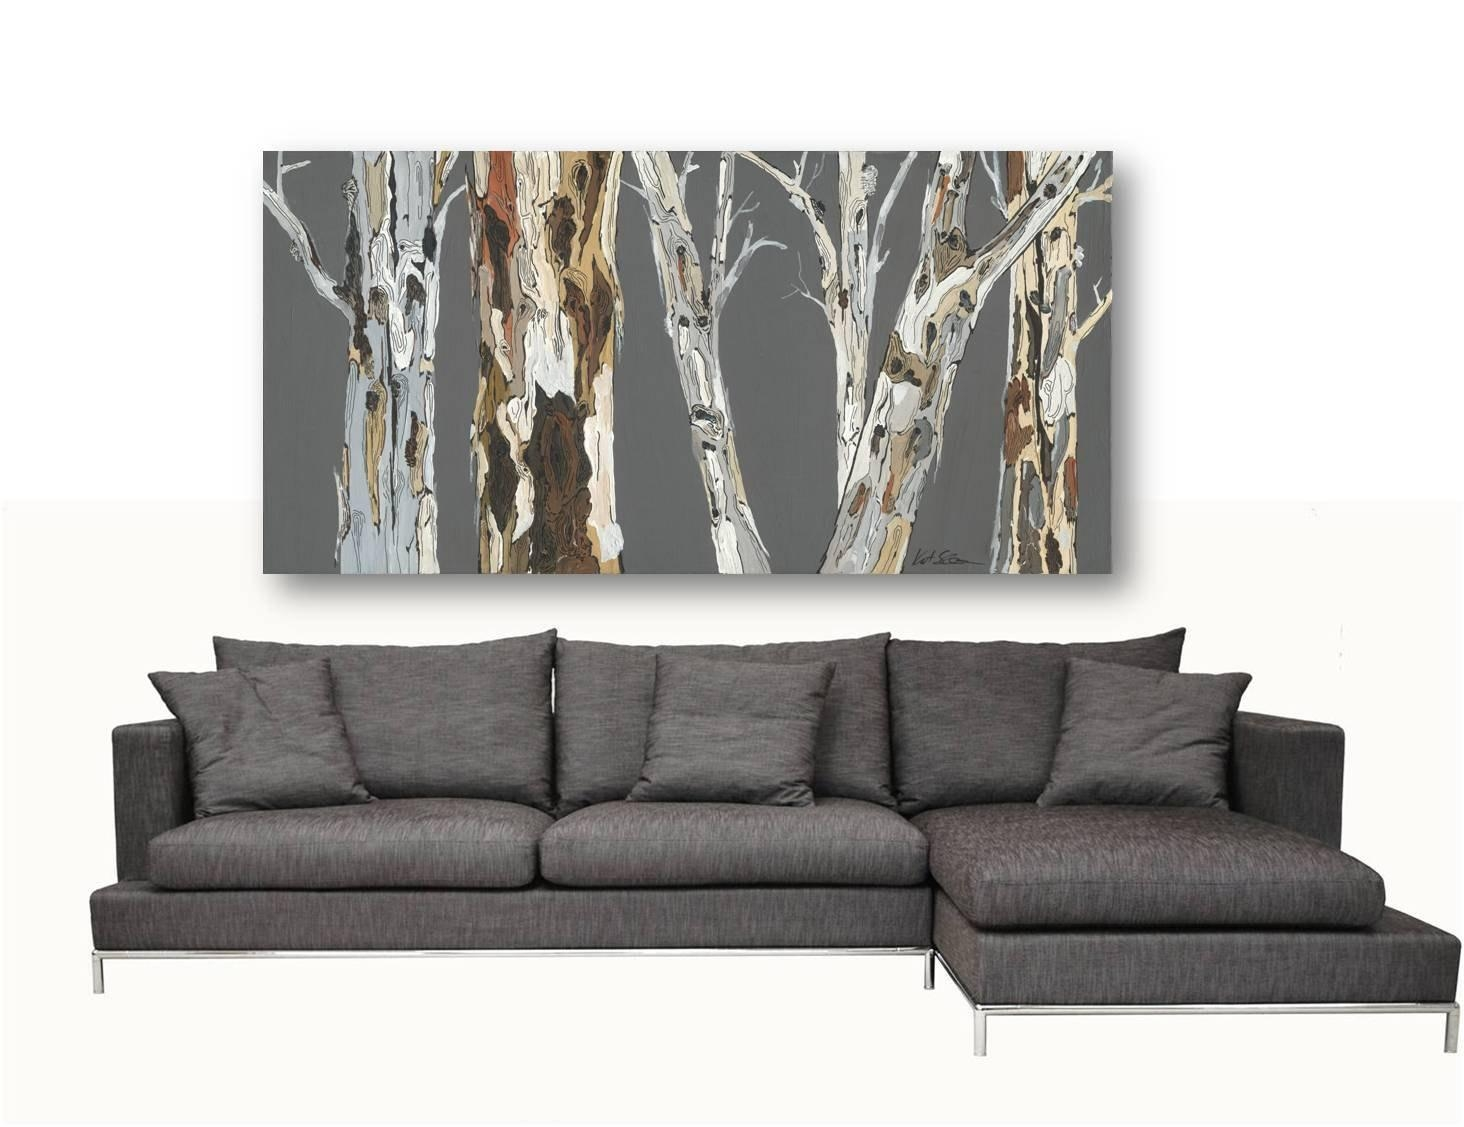 Extra Large Wall Art Print Tree Art Rolled Canvas Pastels Gray Regarding Extra Large Wall Art Prints (Image 6 of 20)